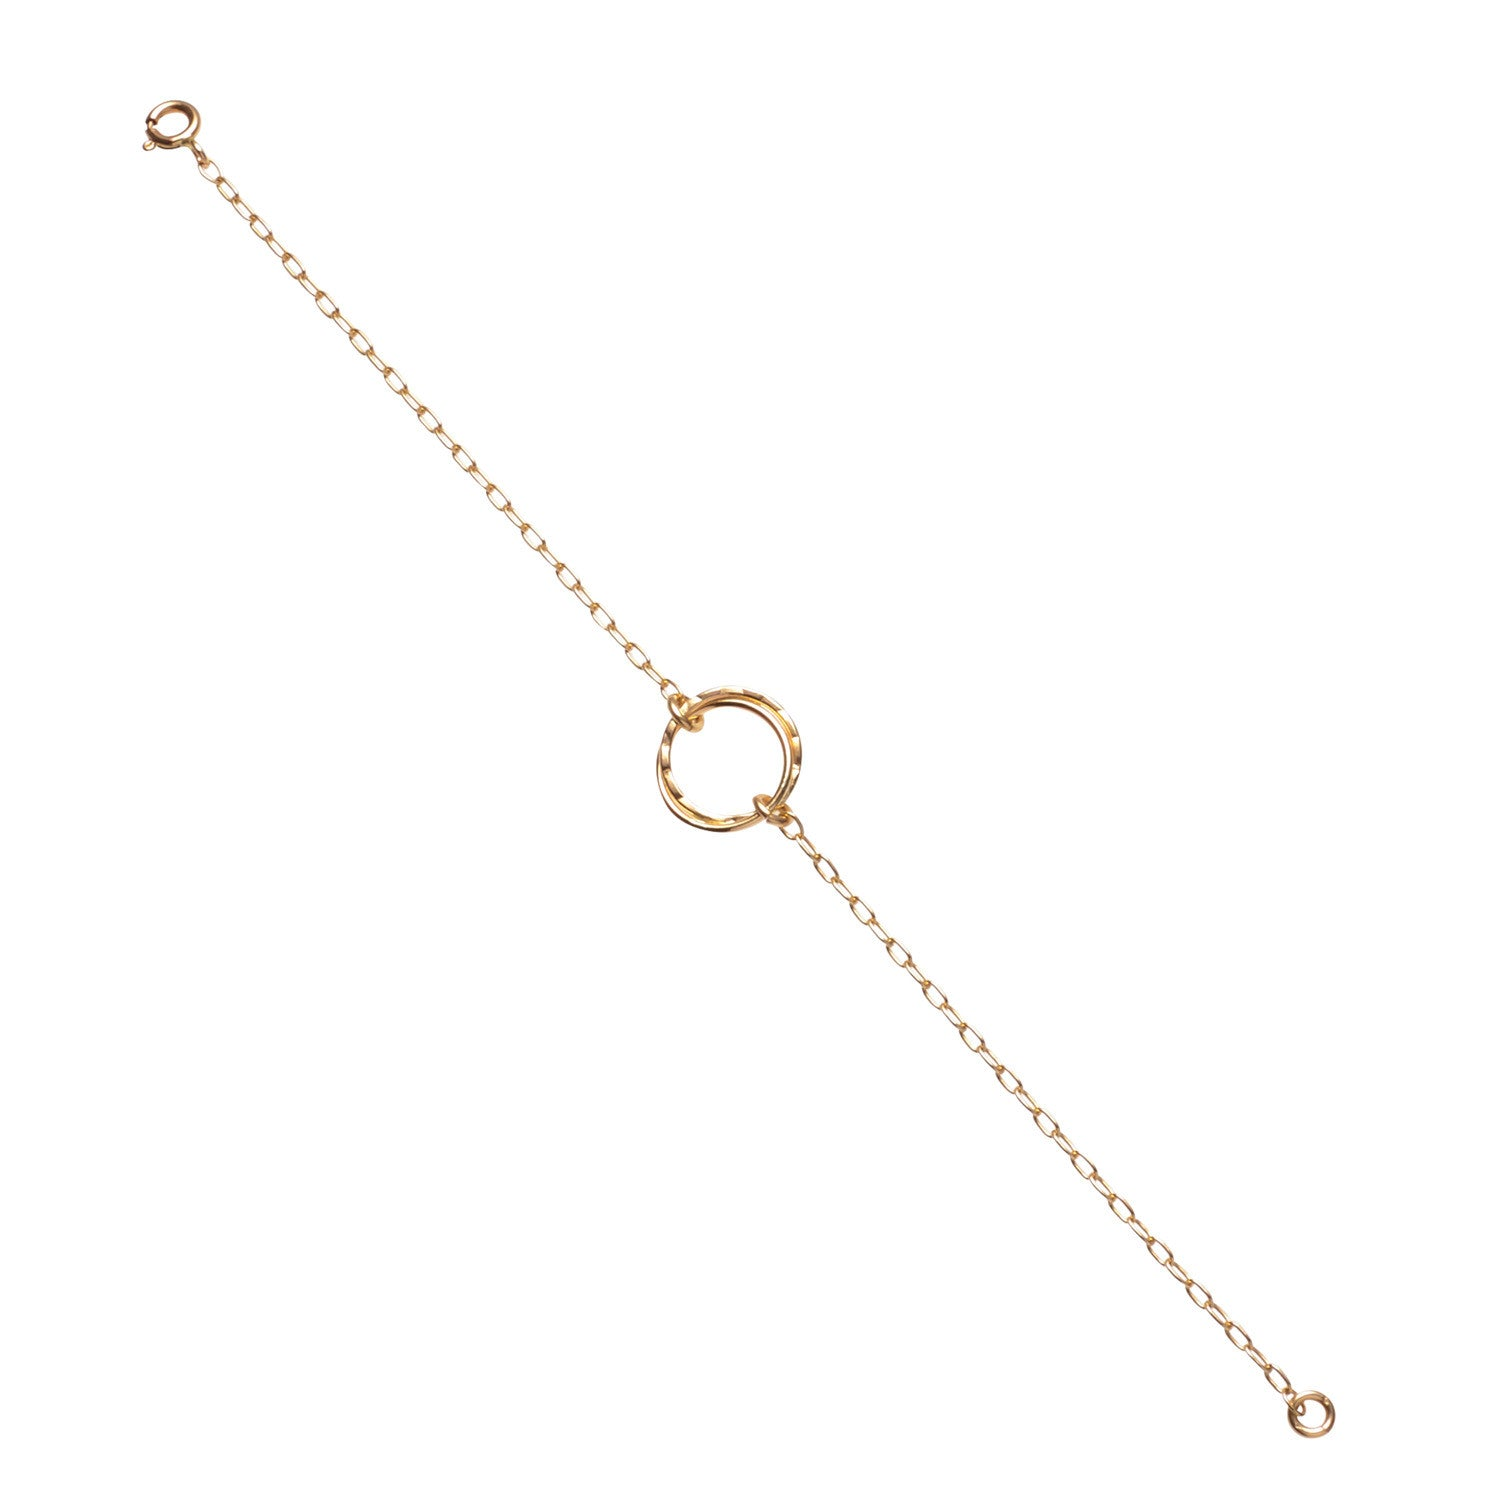 14kt Gold Filled Fused Two Circle Bracelet - MoMuse Jewellery